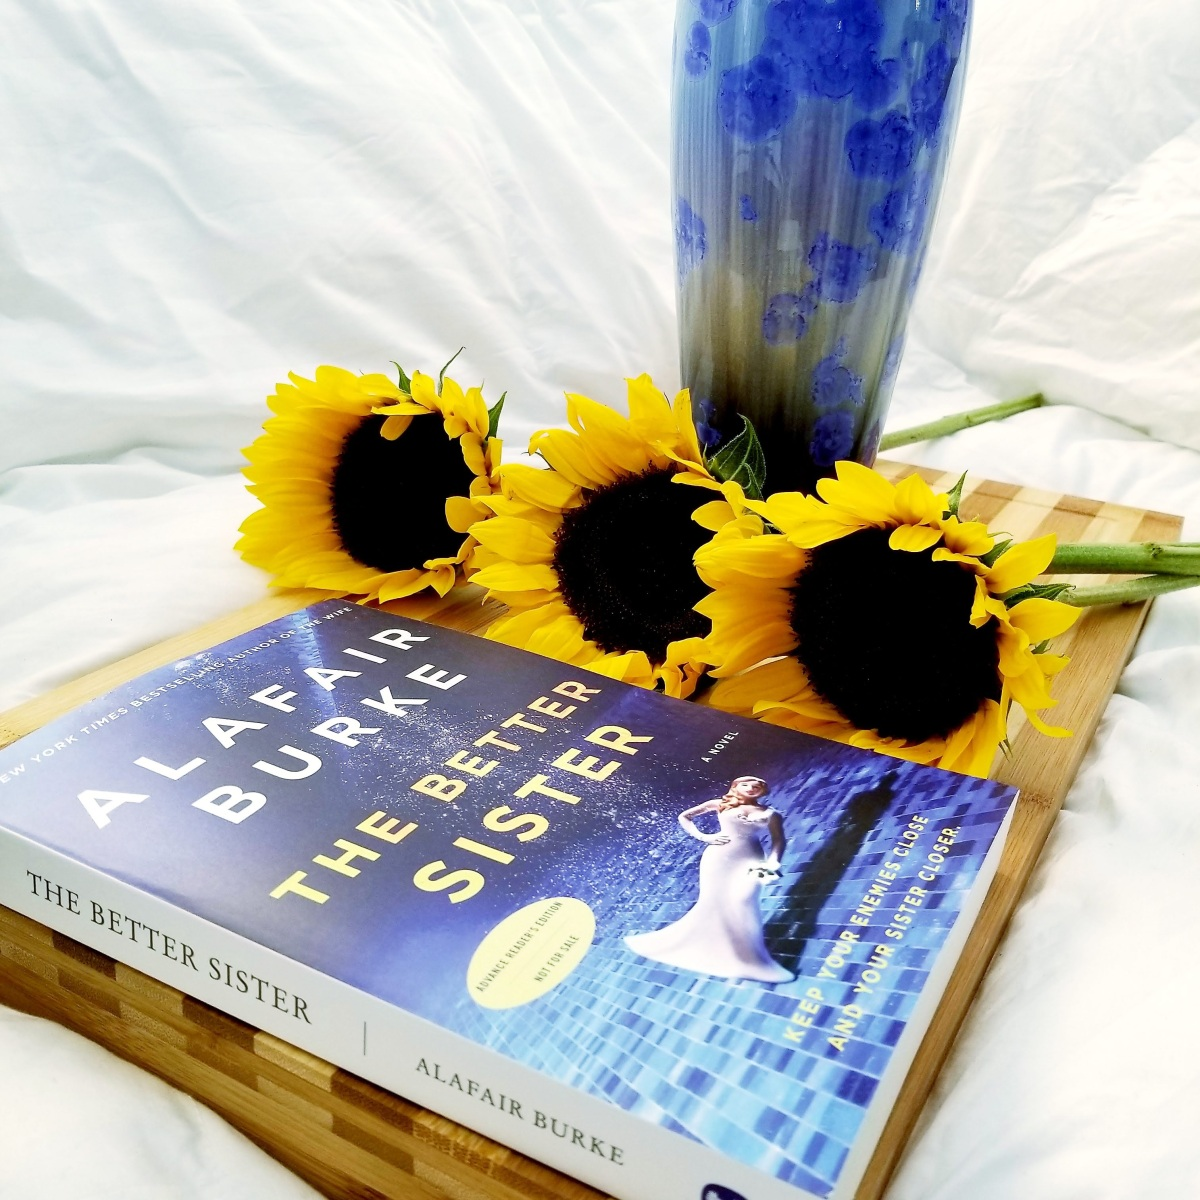 The Better Sister by Alafair Burke #bookreview #tarheelreader #thrbettersister @alafairburke @harperbooks #thebettersister